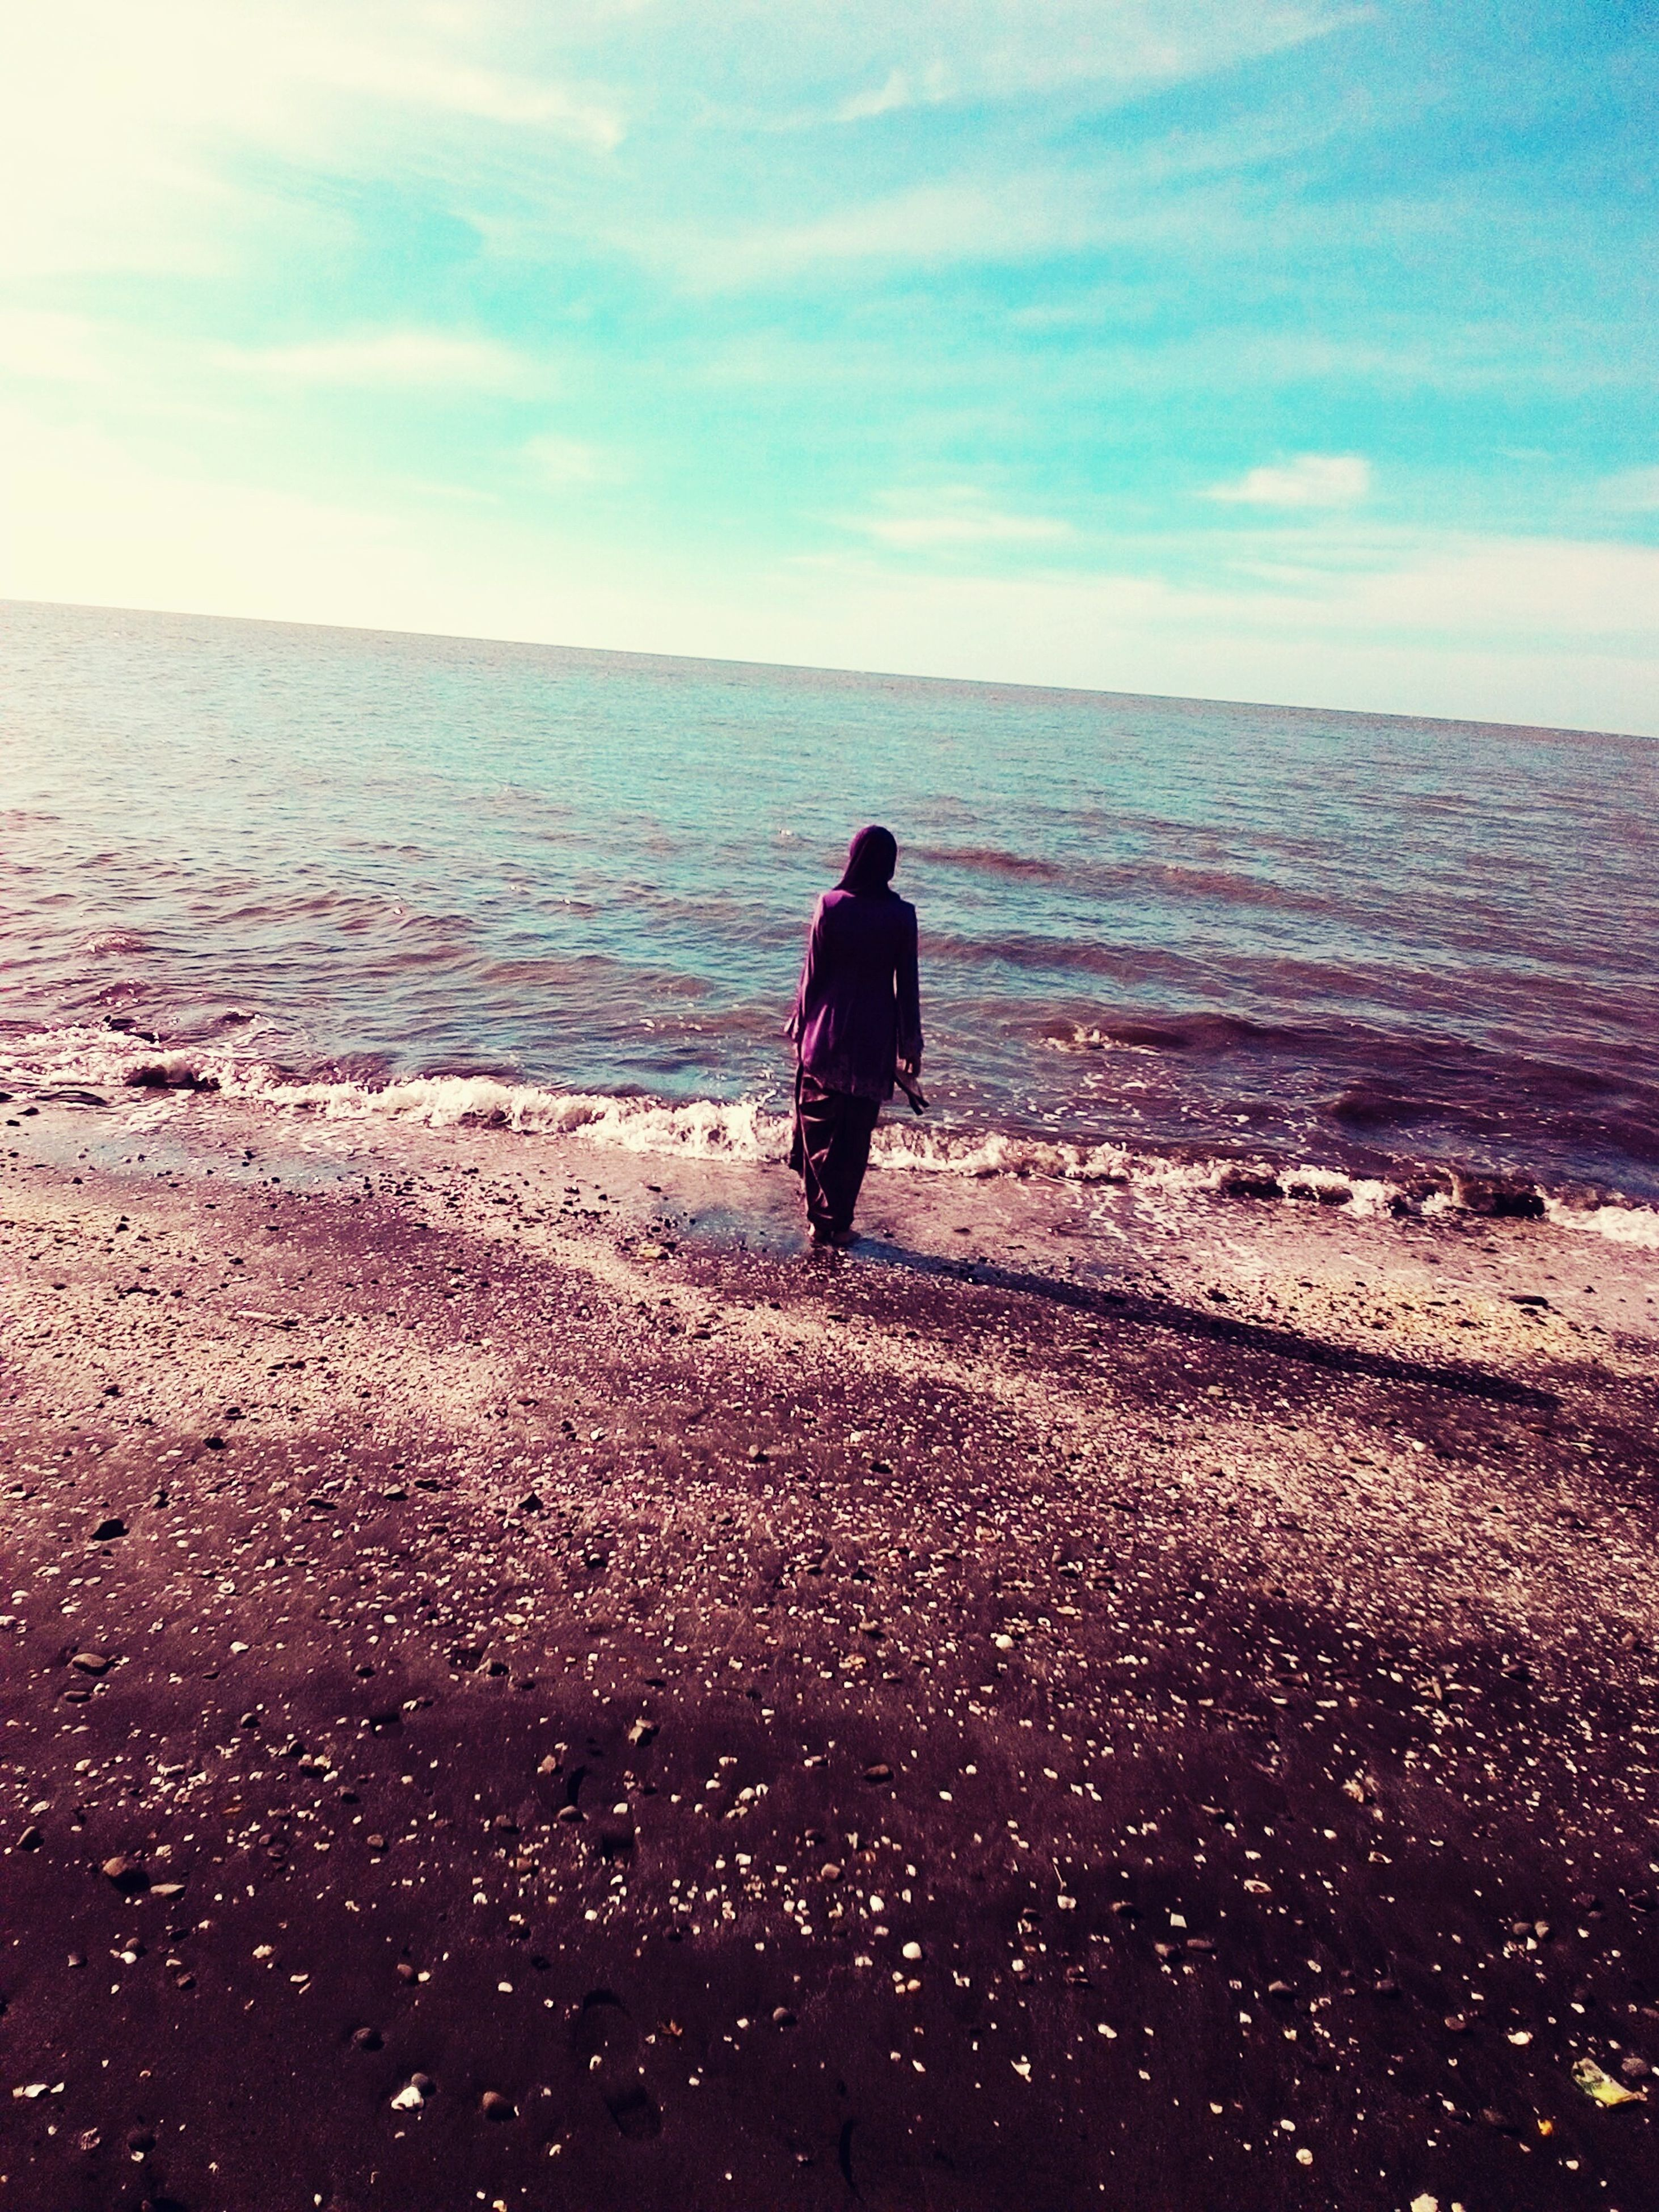 water, sea, horizon over water, full length, sky, rear view, beach, lifestyles, tranquil scene, standing, leisure activity, tranquility, silhouette, scenics, shore, beauty in nature, nature, getting away from it all